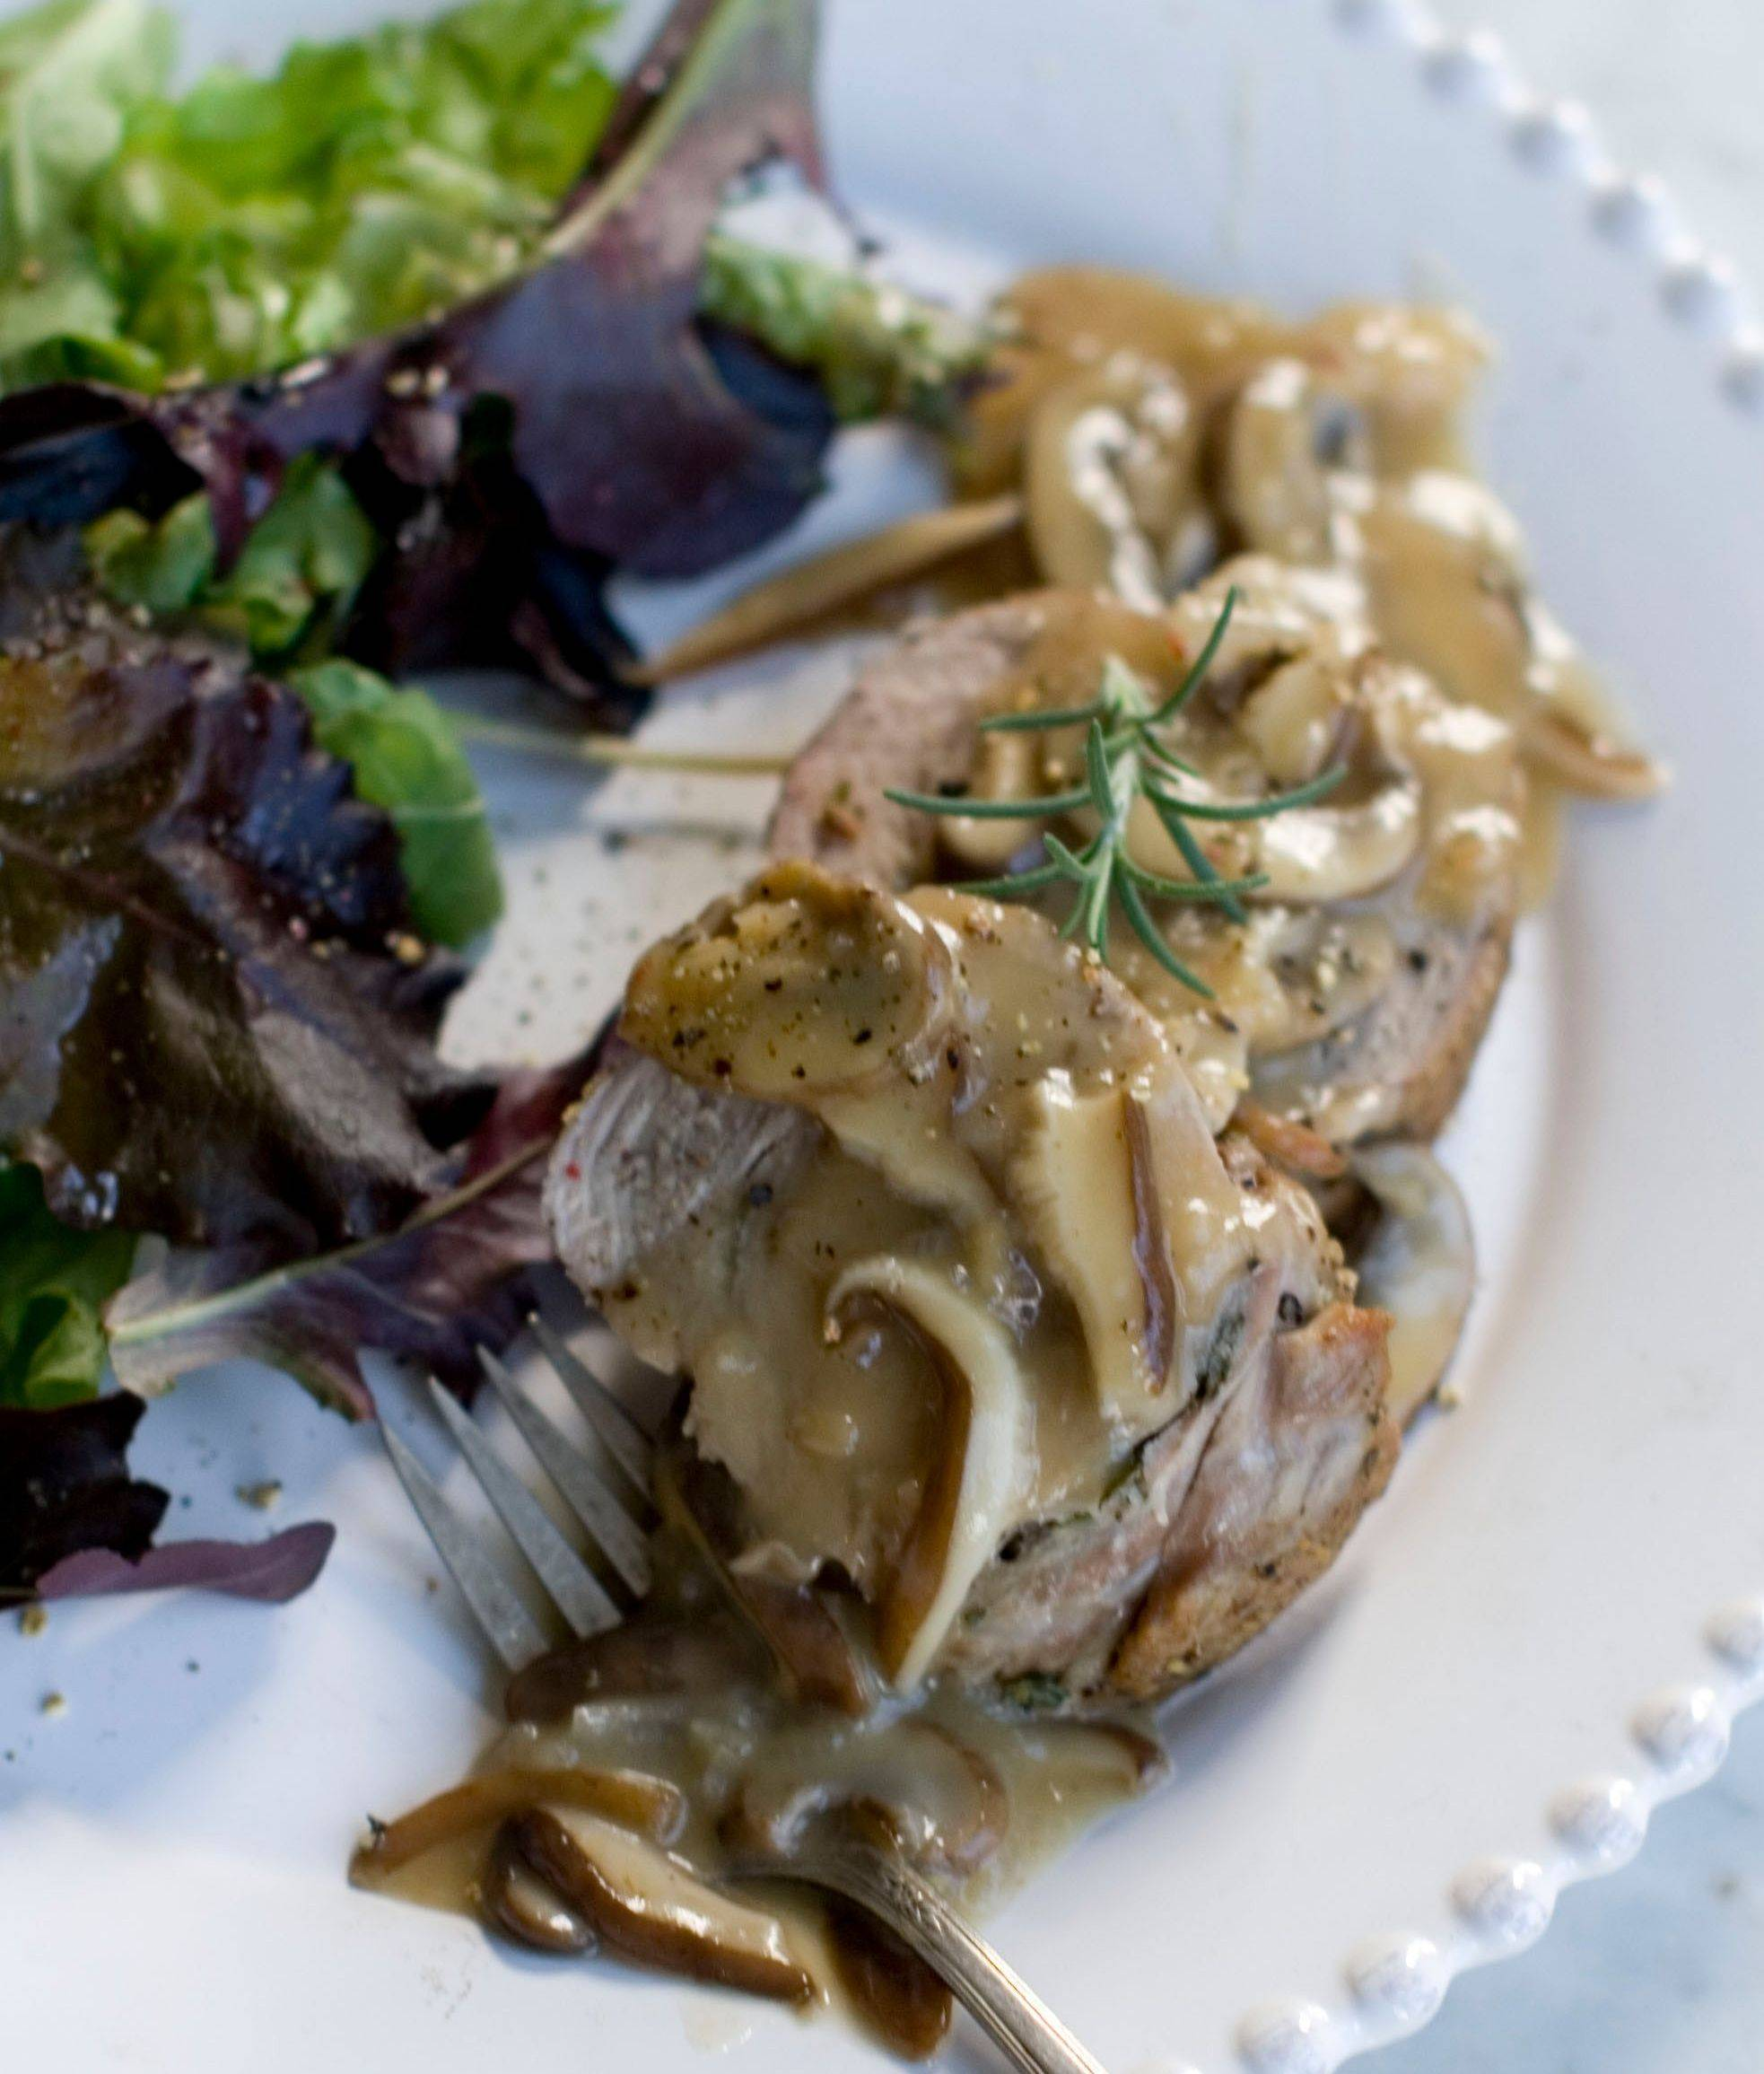 Double Pork Roast with Mushroom Marsala Sauce can be prepped a day in advance so cooks don't have to be tied to the kitchen when holiday guests arrive.